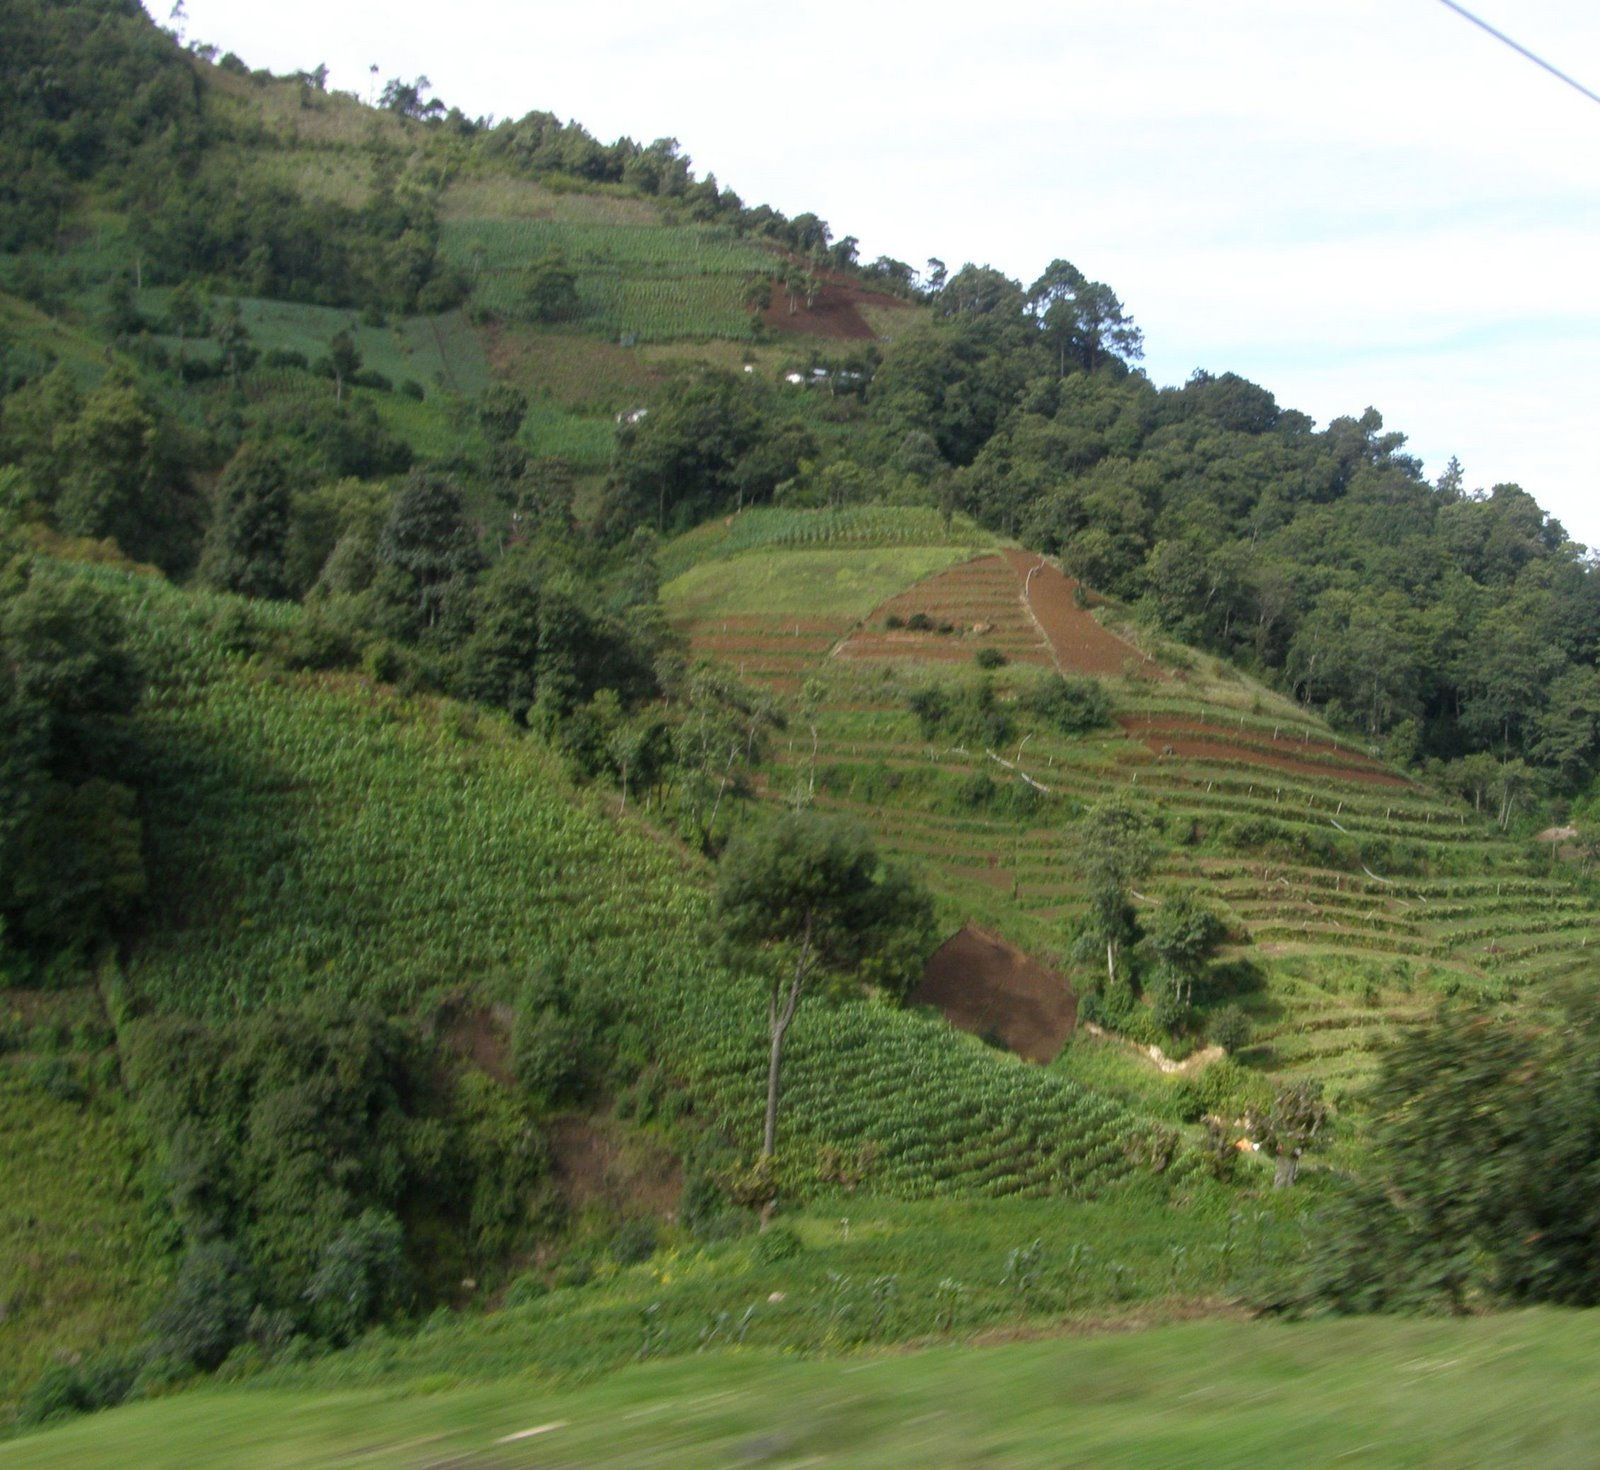 Guatemala farm fields